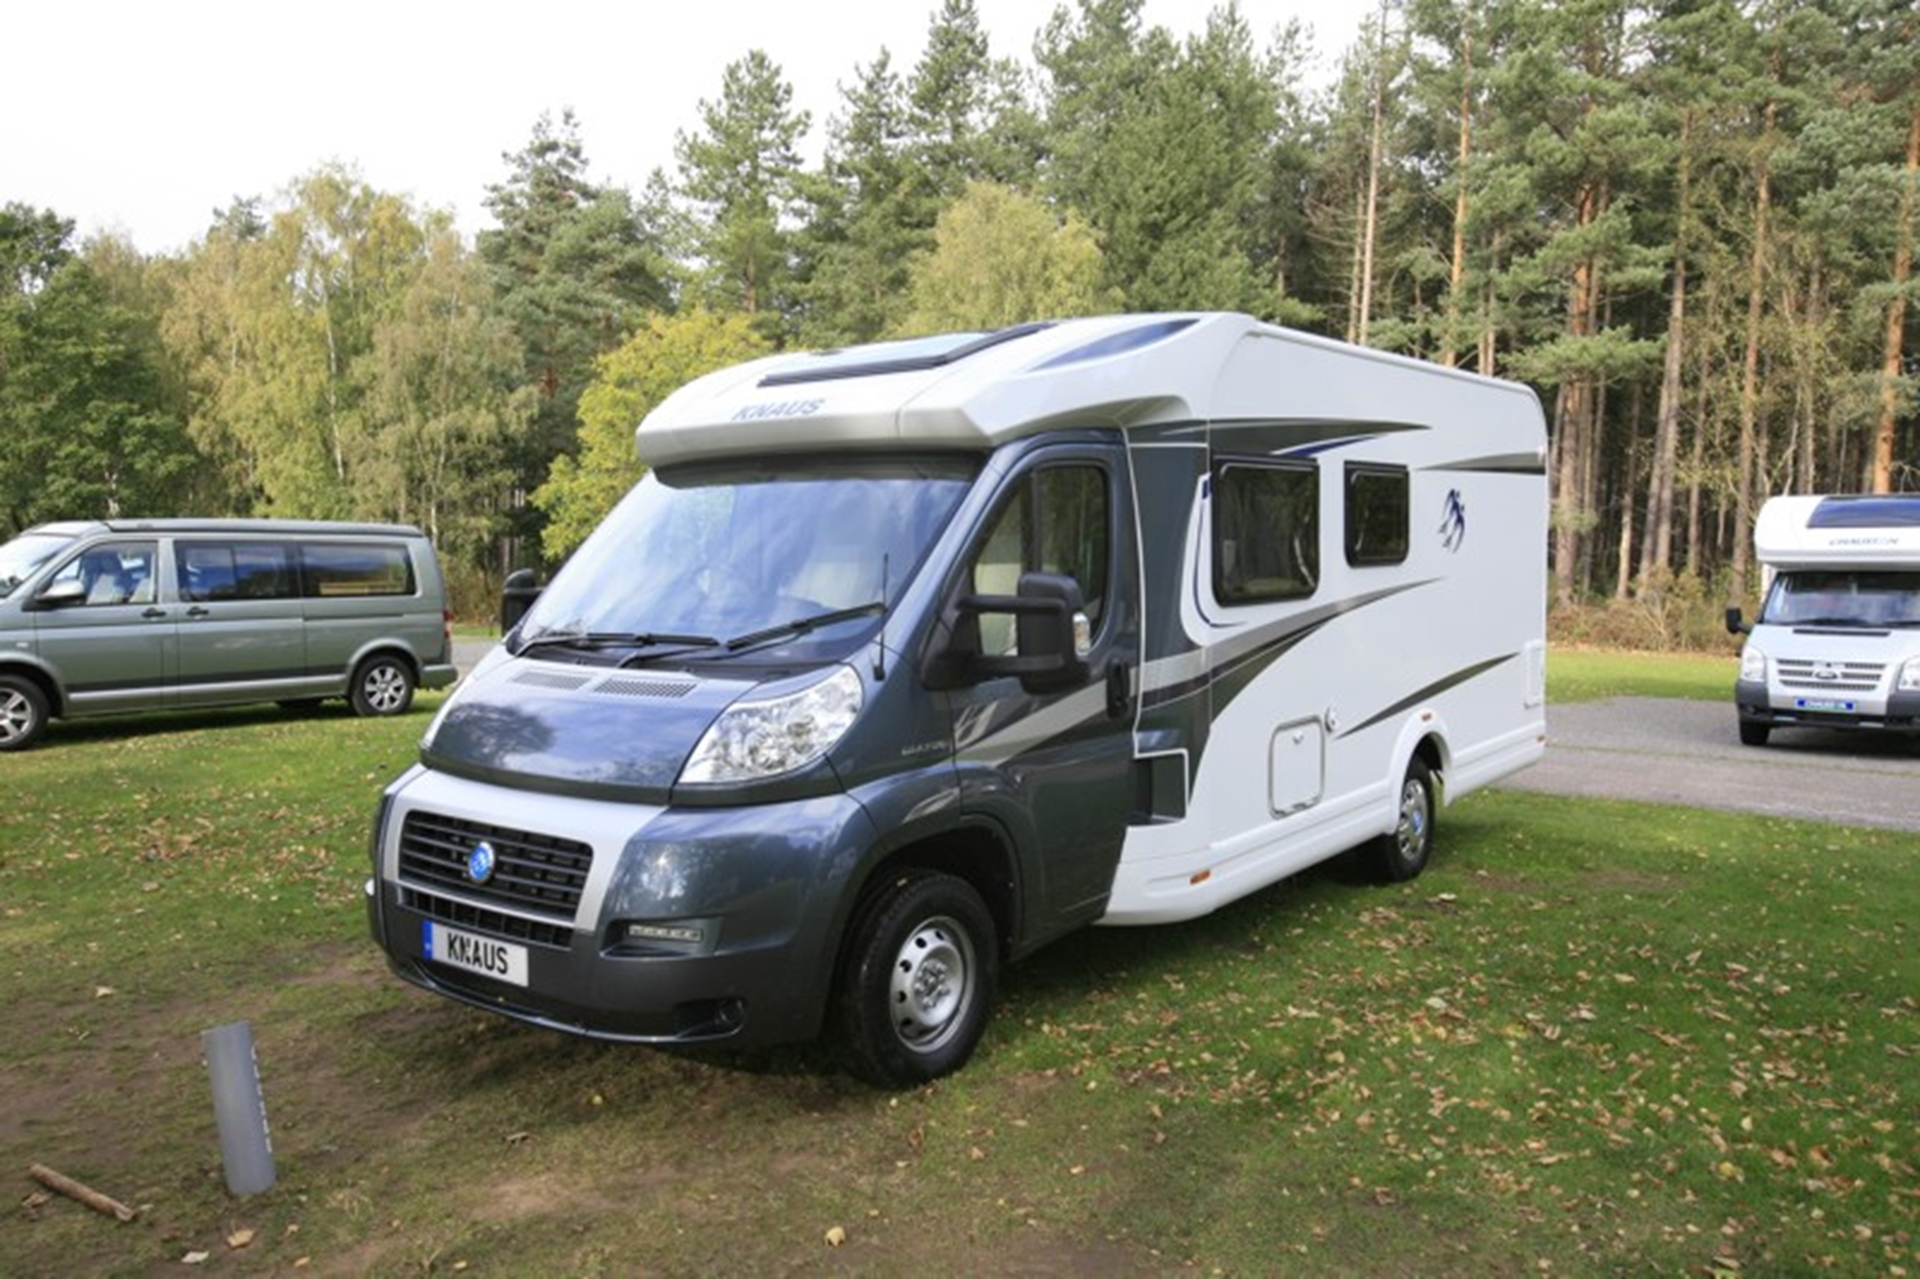 The Motorhome of the Year 2012 – the Knaus Sky TI 650 MF